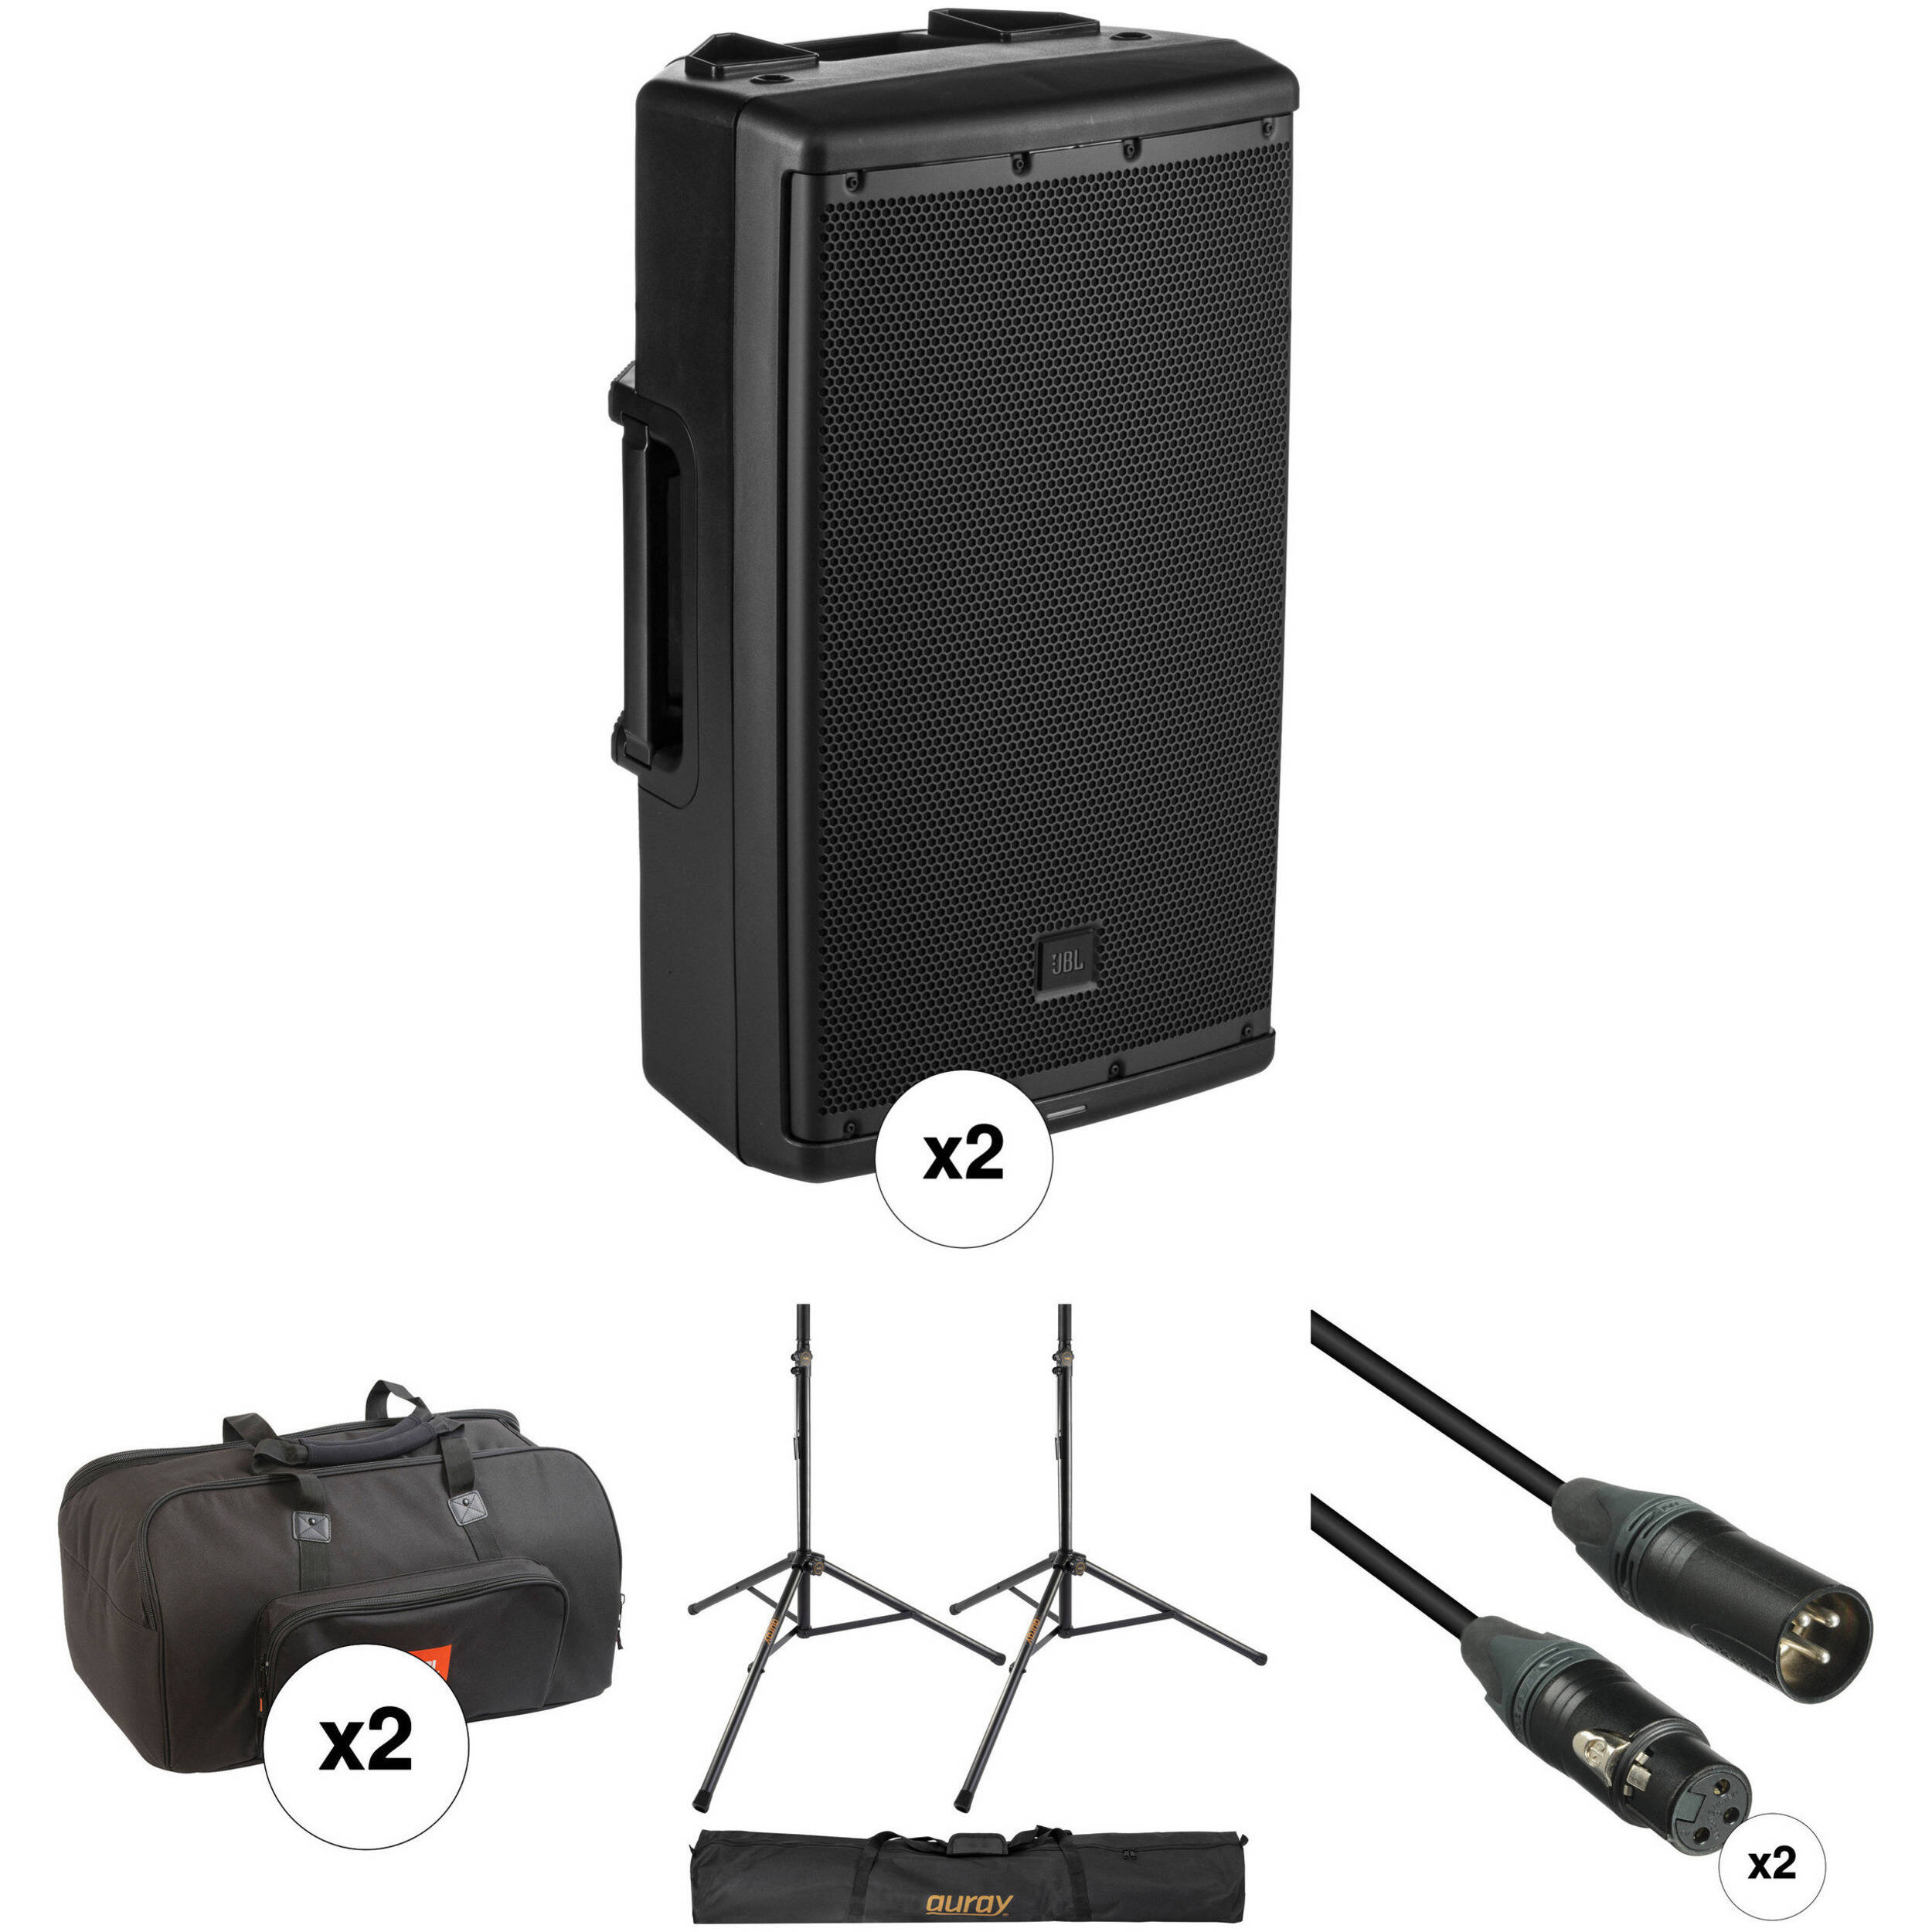 jbl dual eon612 powered speaker kit with 2 x covers 2 x stands. Black Bedroom Furniture Sets. Home Design Ideas